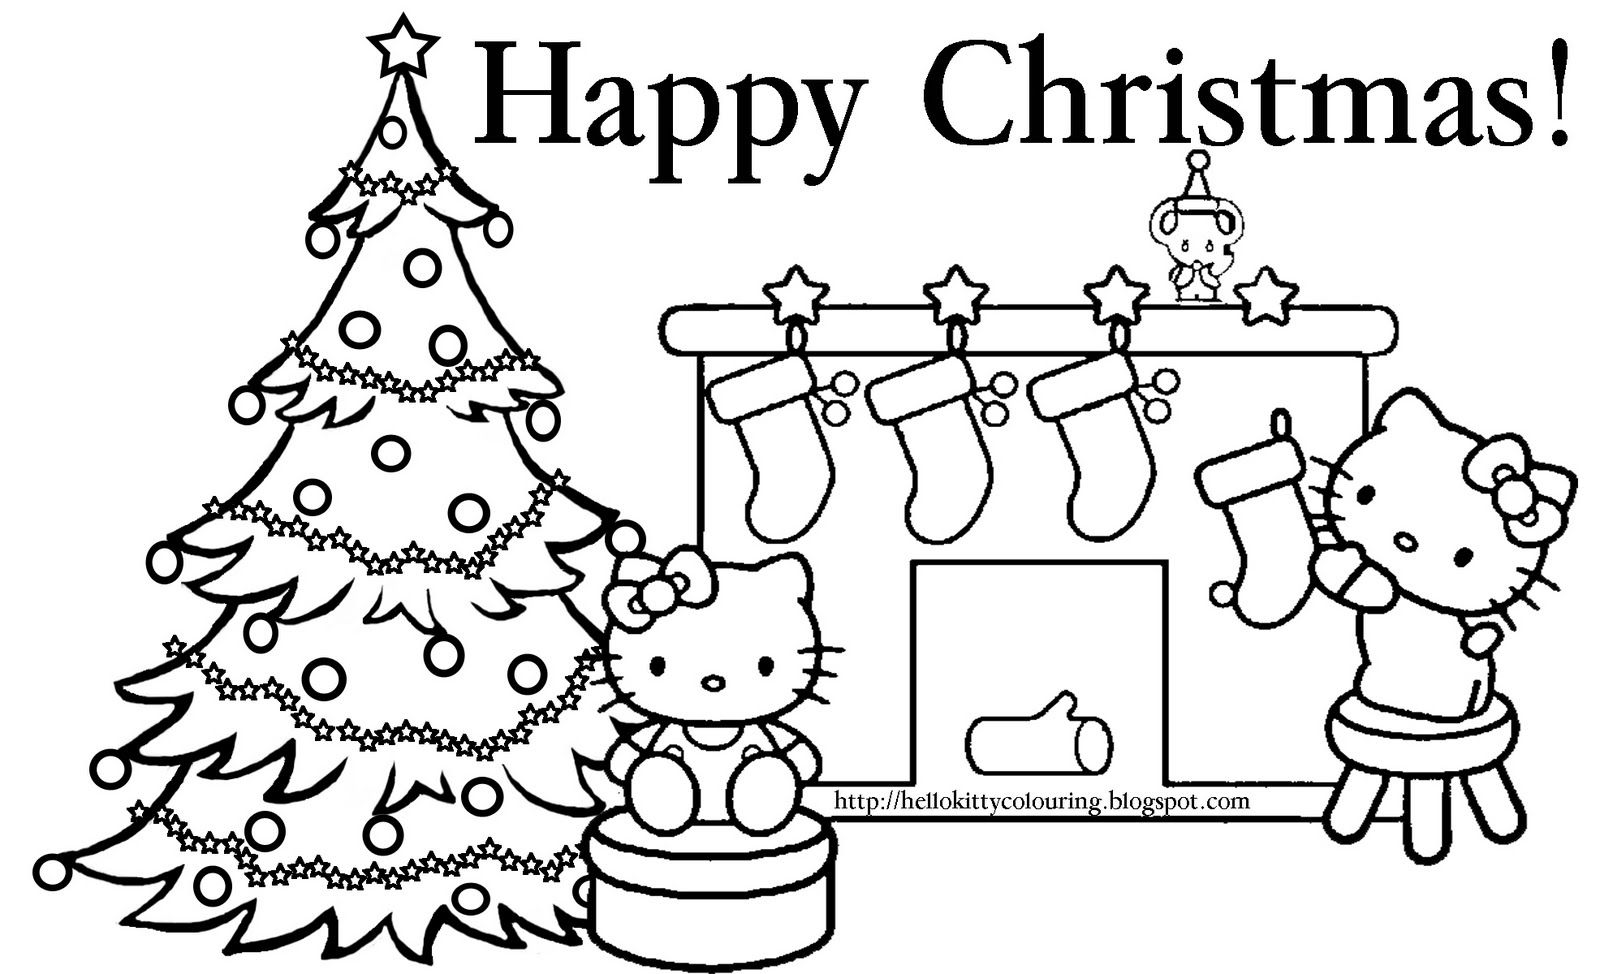 Printable Coloring Pages Hello Kitty Christmas : Hello kitty coloring pages